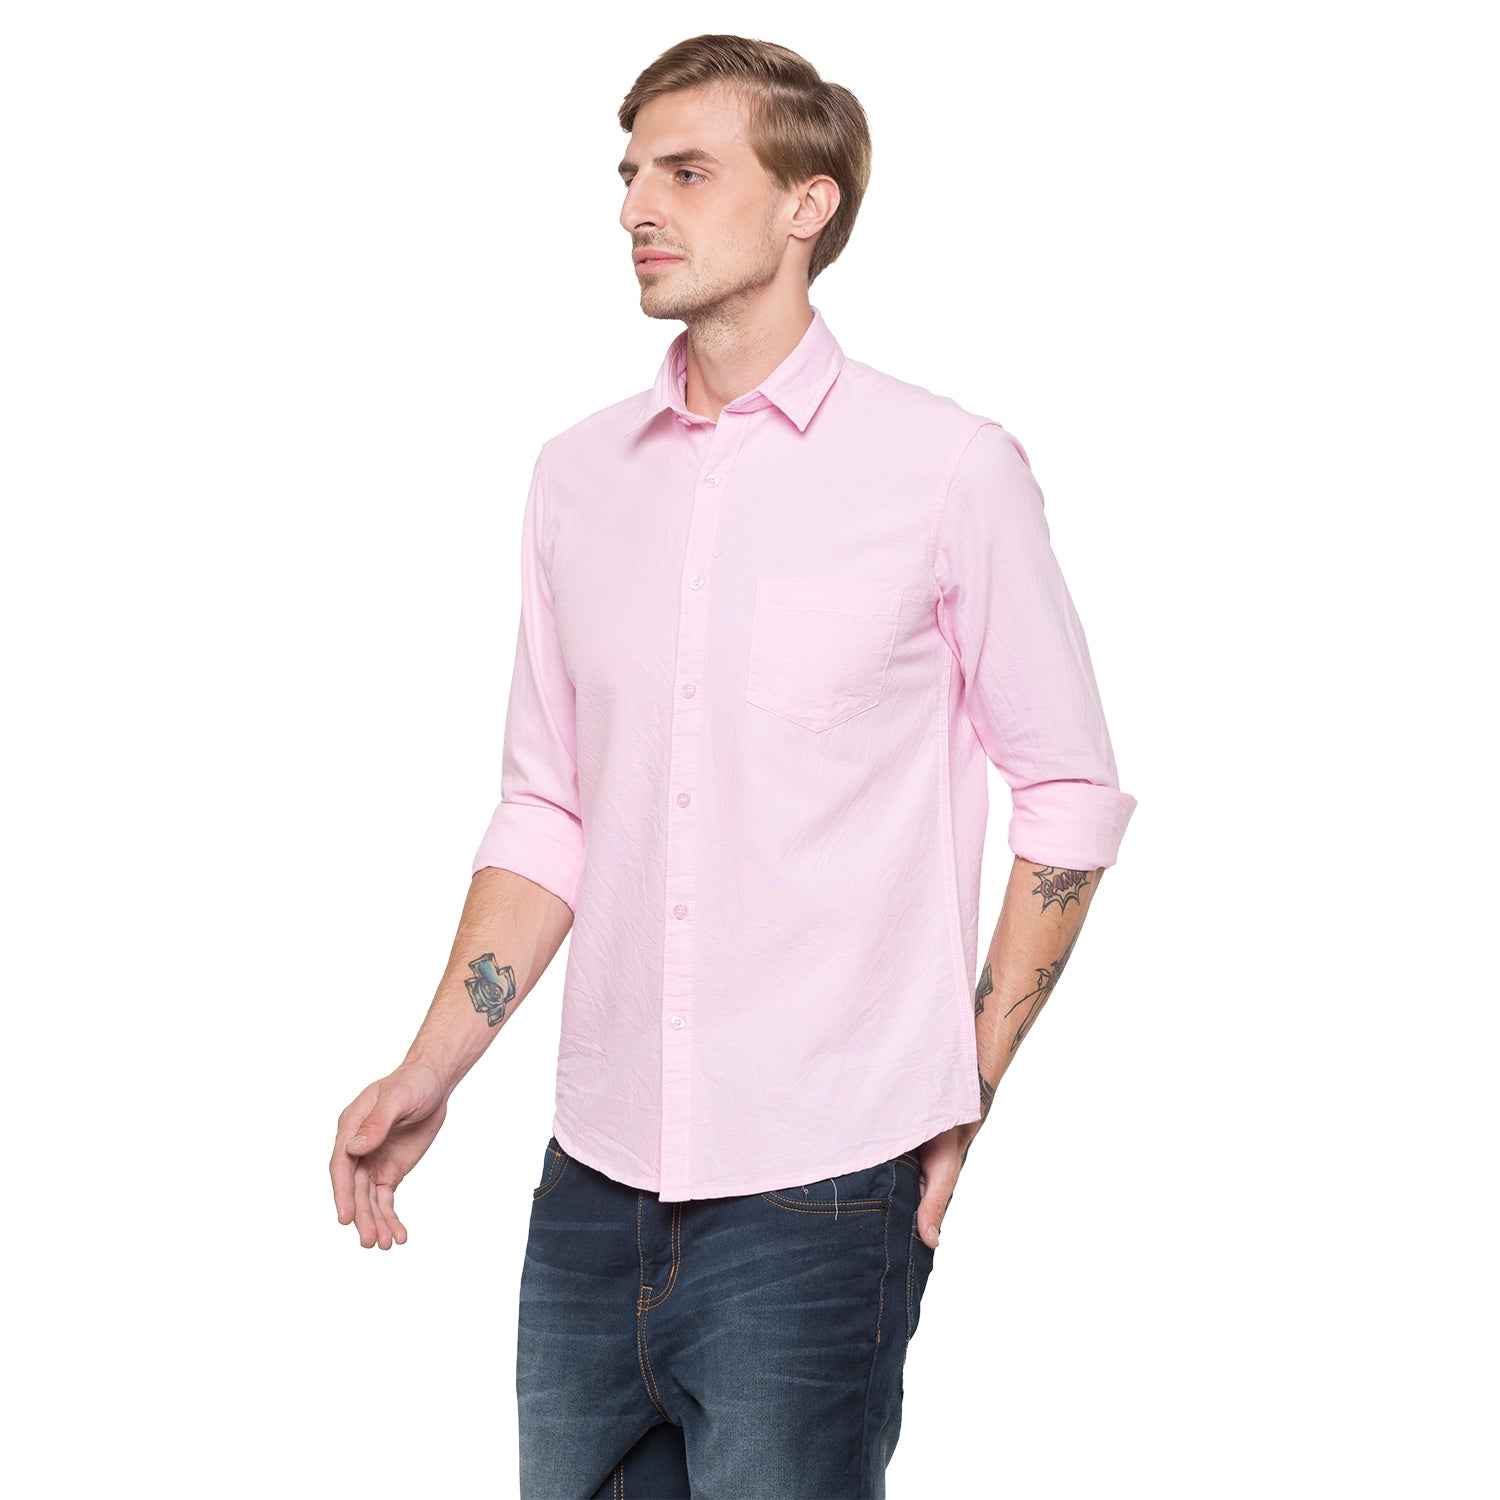 Globus Pink Solid Shirt-2